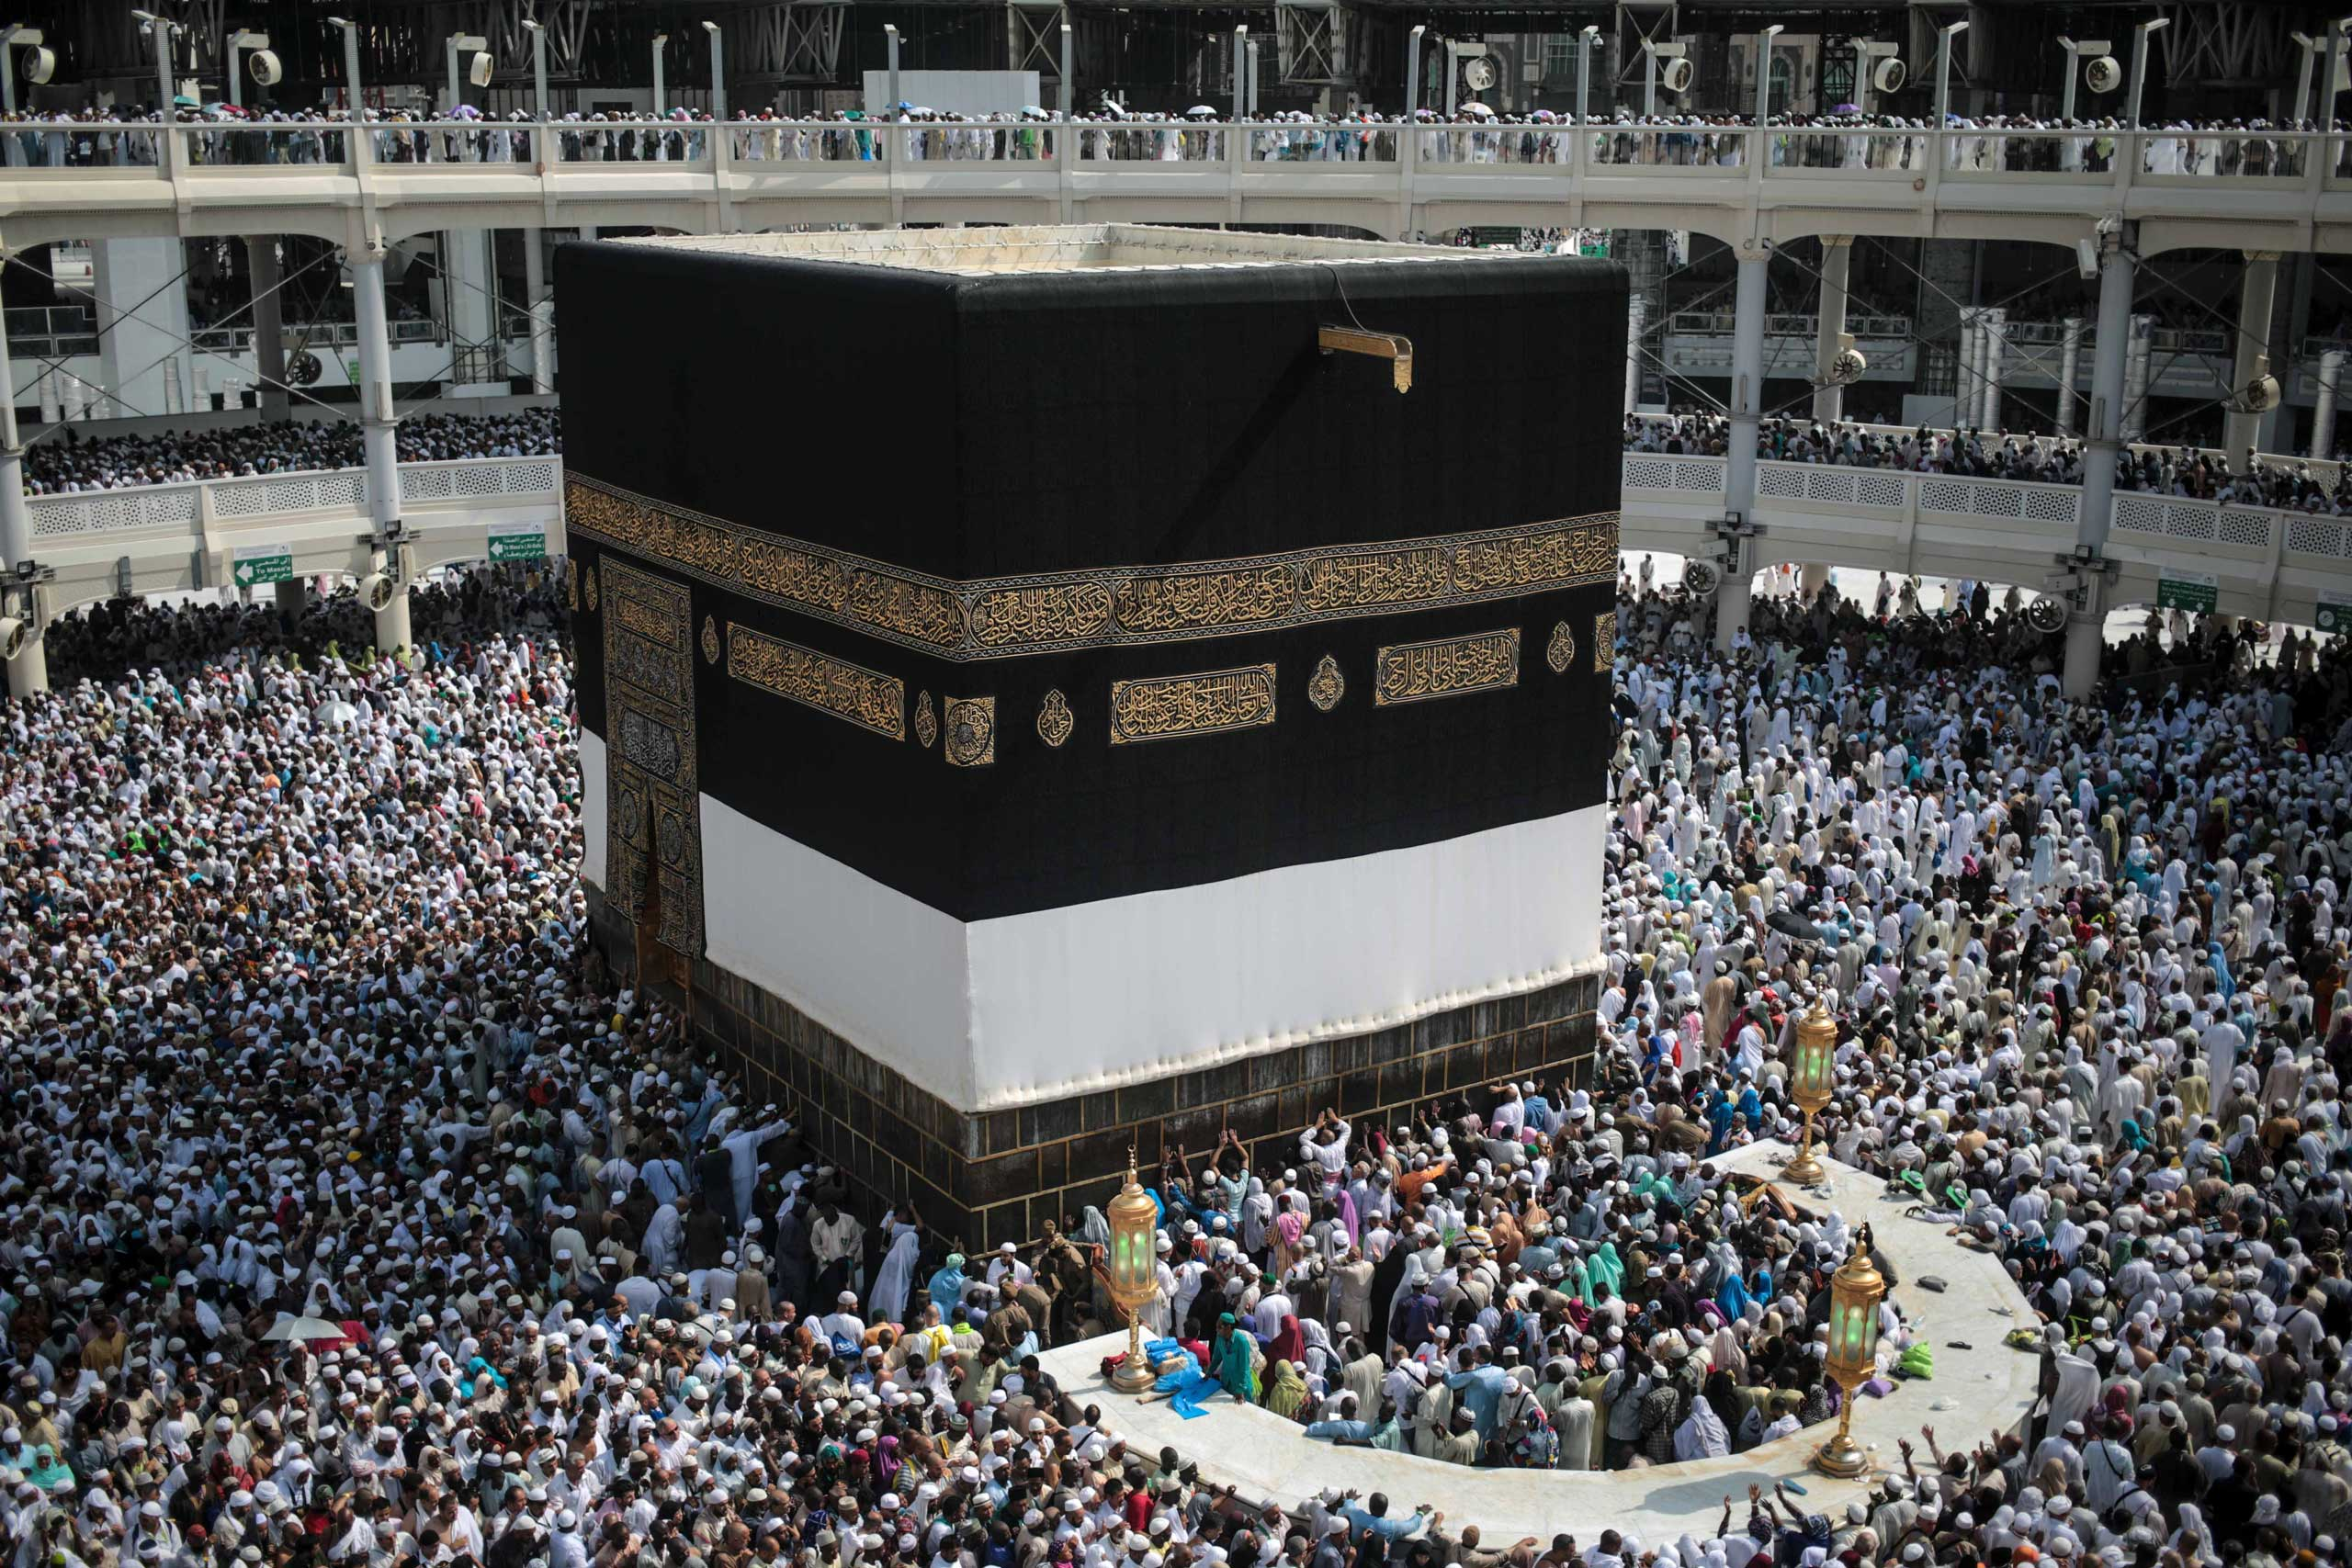 See Muslim Pilgrims Flocking to Mecca for the Hajj | Time.com